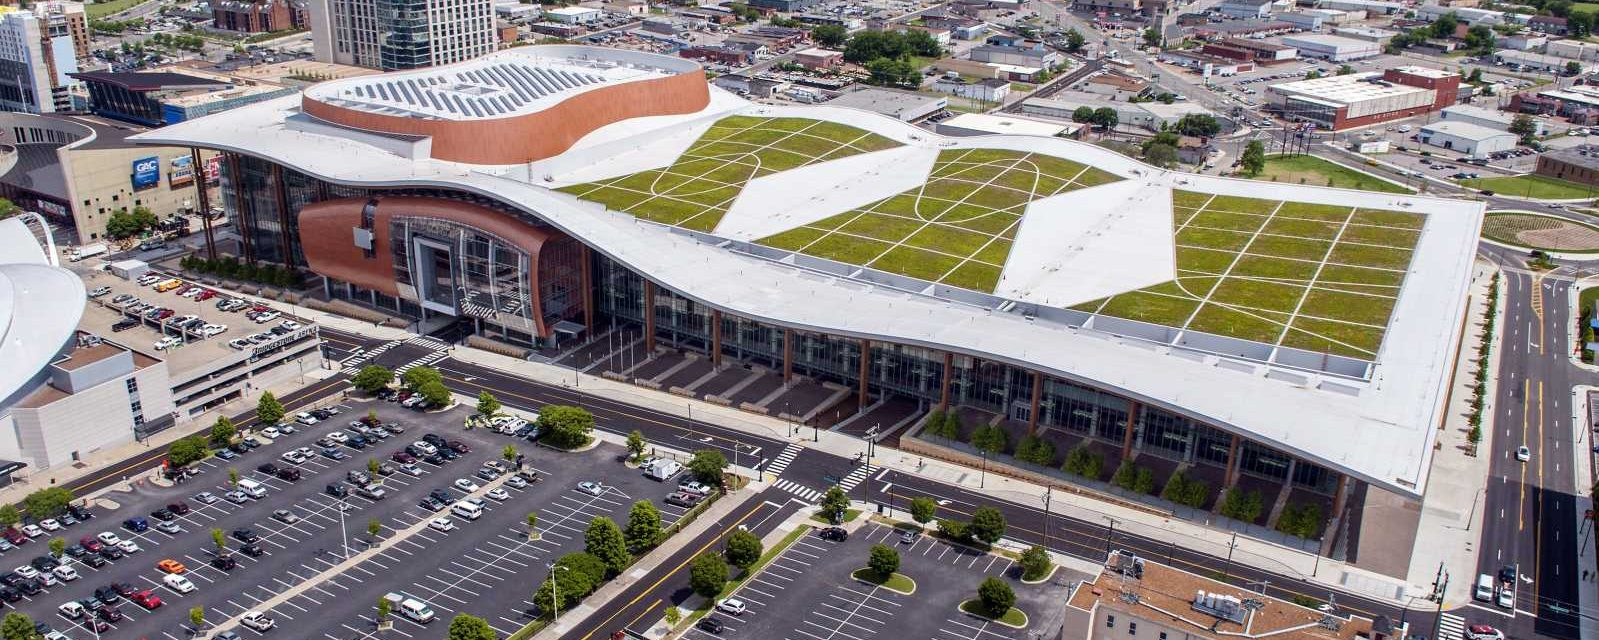 Six Green Spaces That Transform Buildings Into Sky Gardens